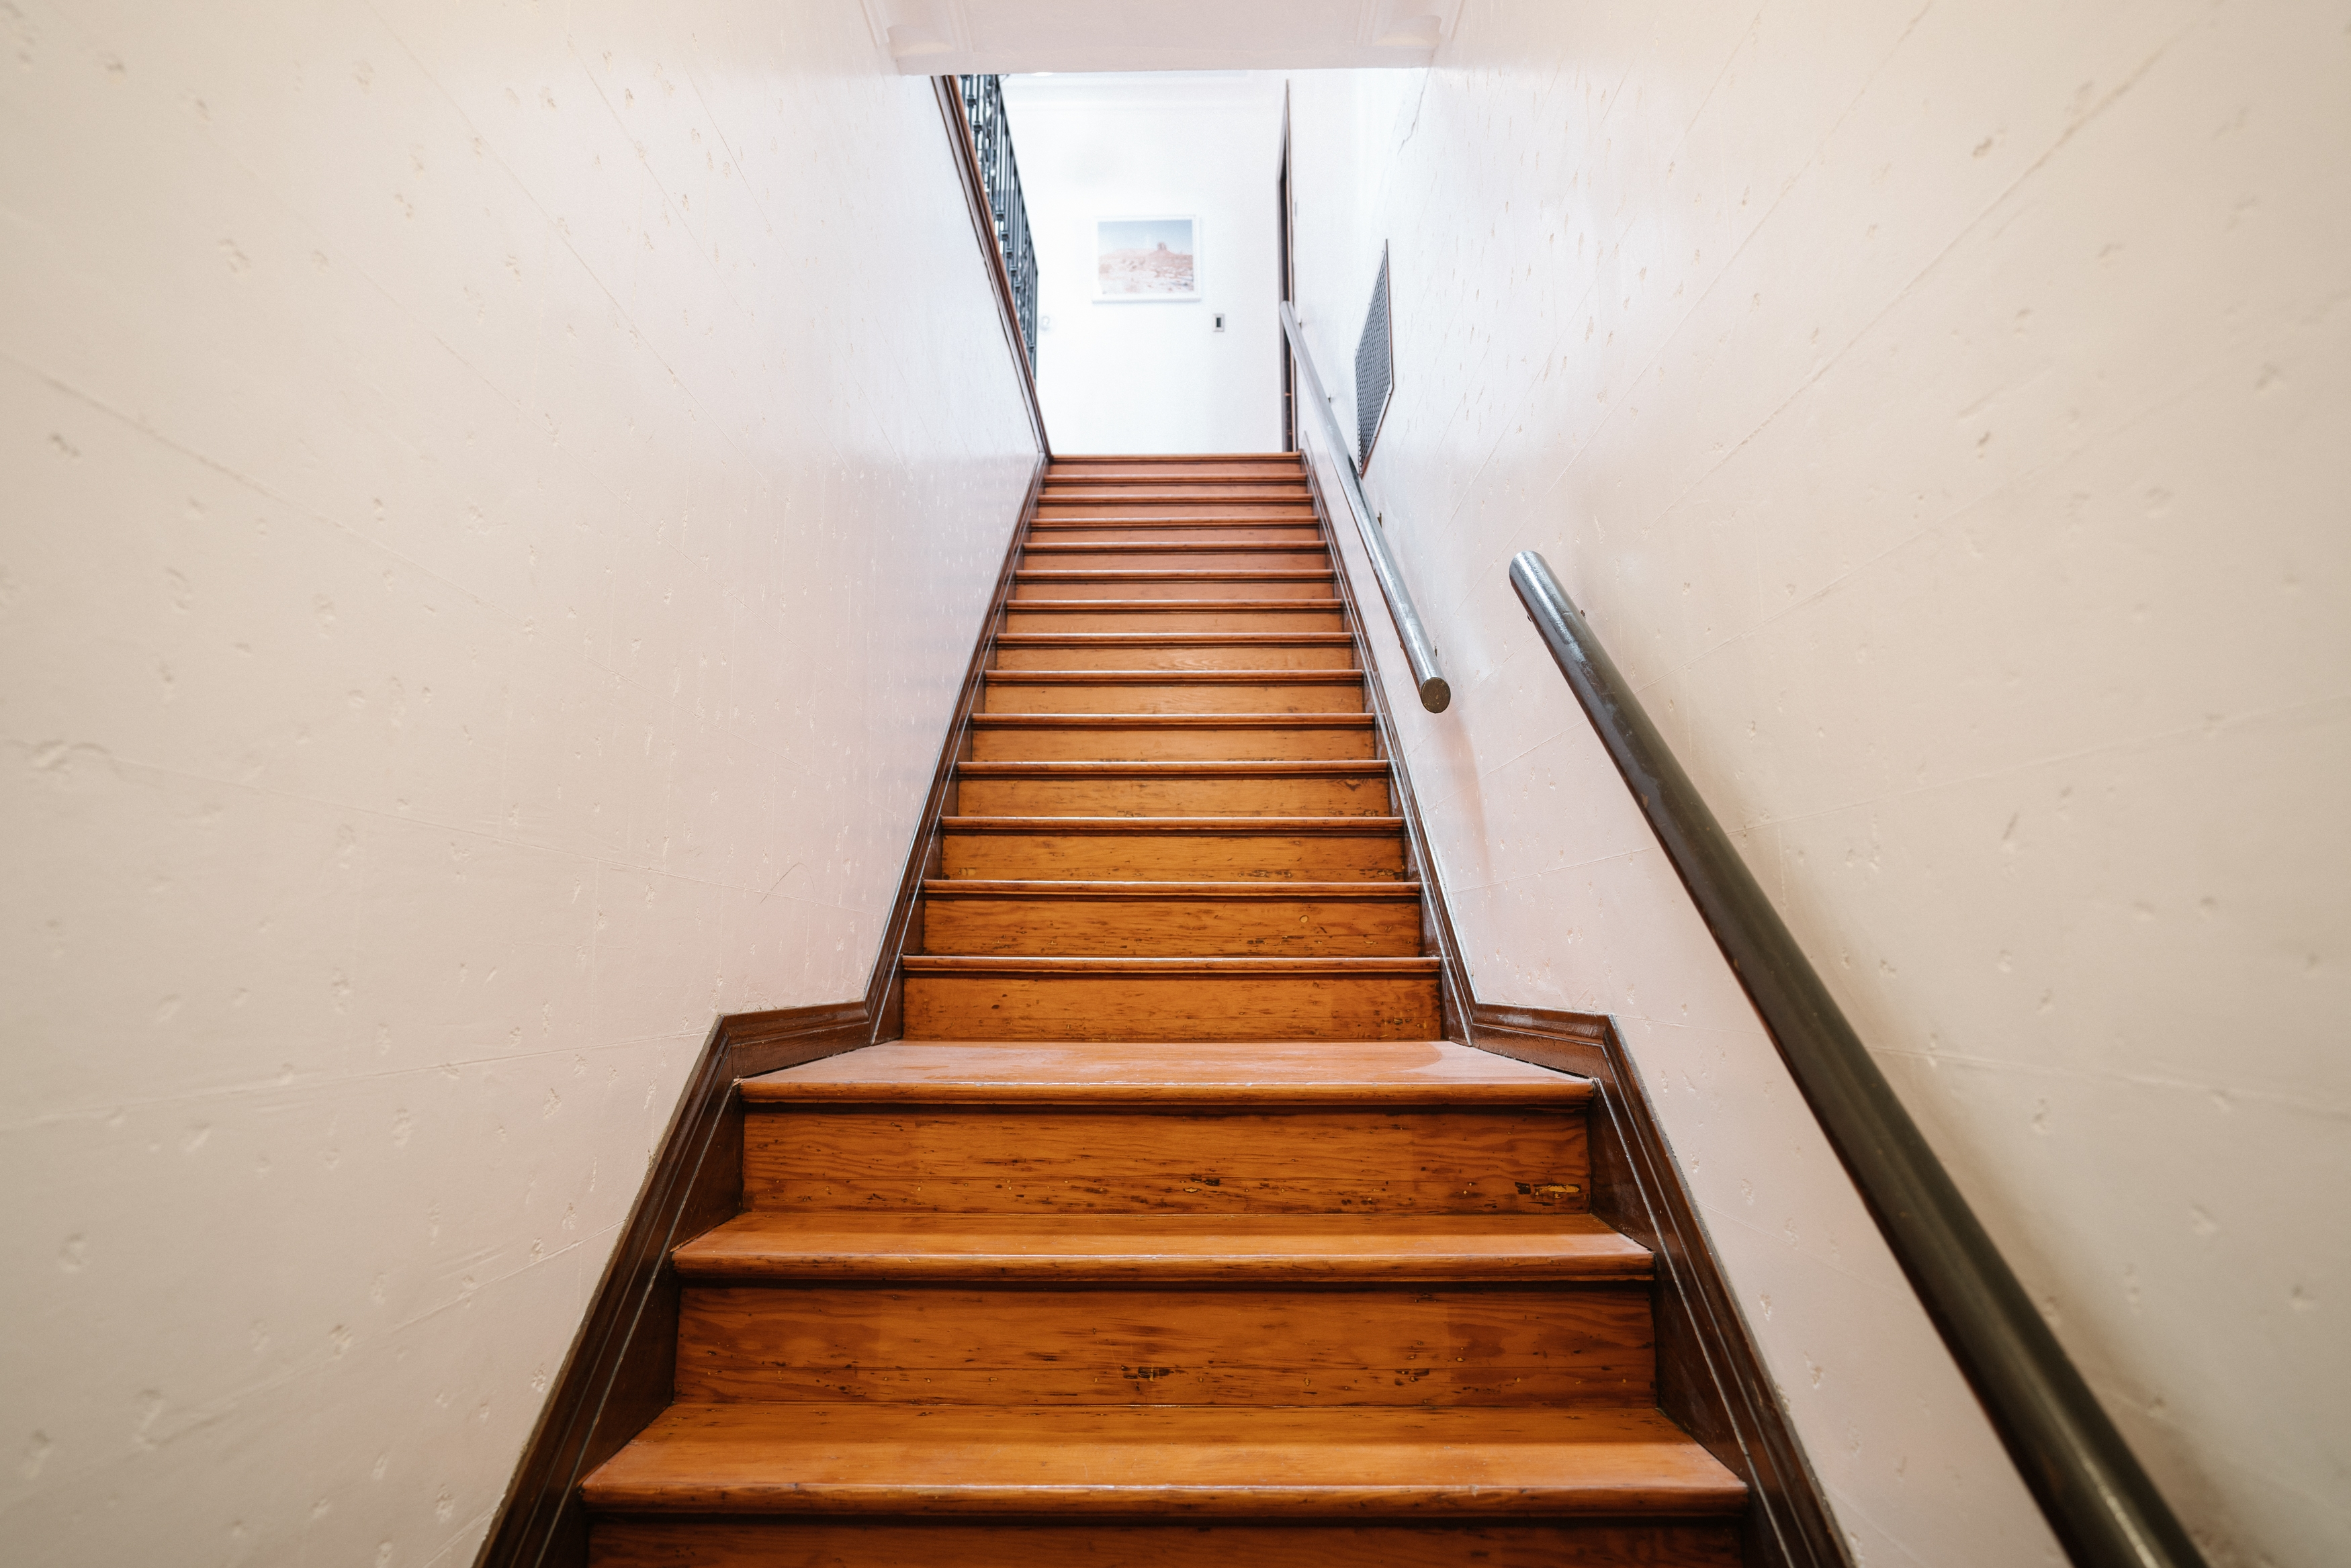 Laminate Flooring On Stairs Considerations Installation Hunker | Hardwood Floor To Stair Transition | Tile | Molding | Vinyl Plank | Laminate | Carpeted Stairs